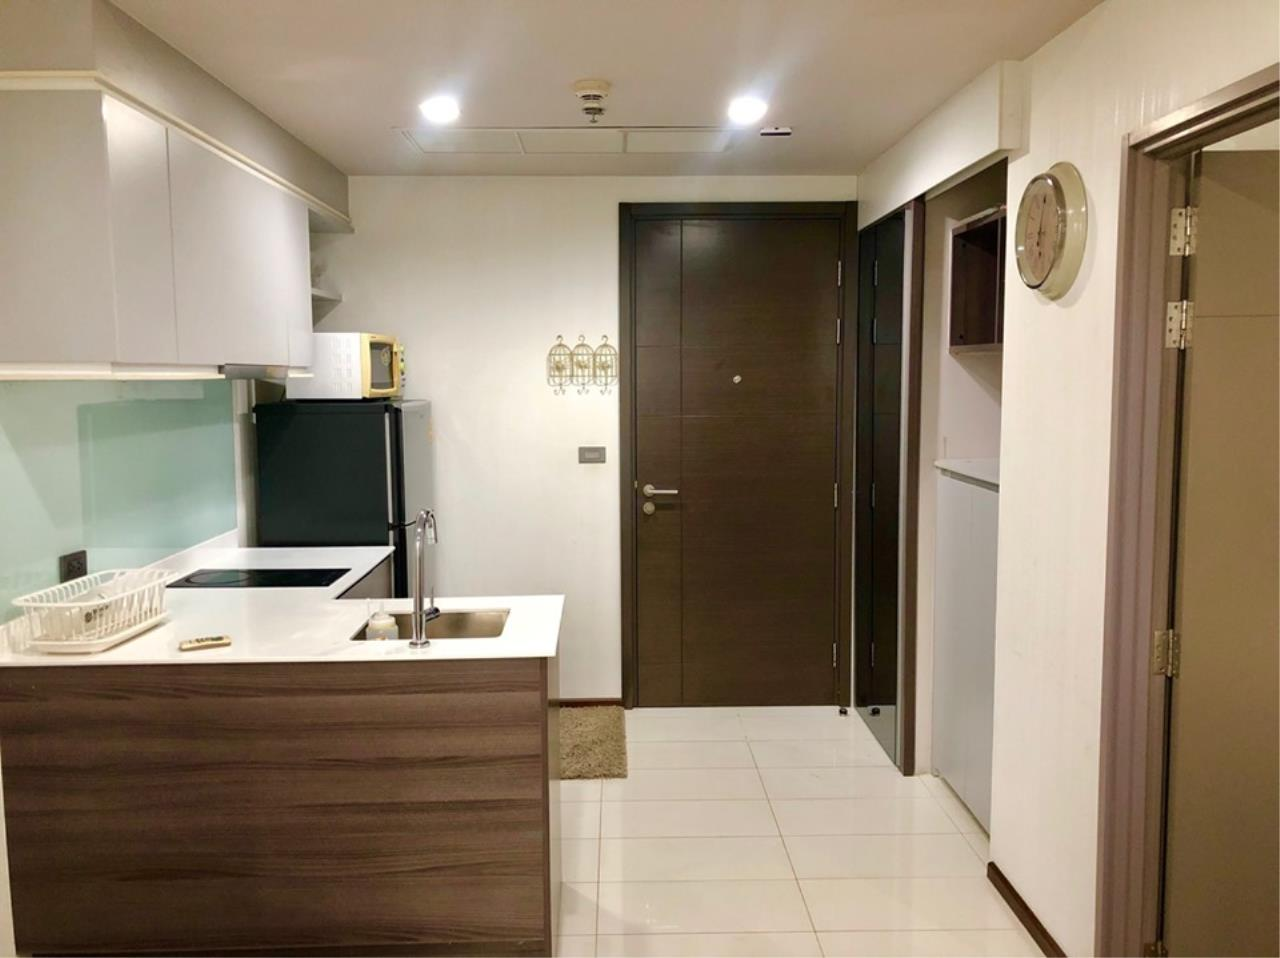 Agent - Prombood Agency's Sale with tenant - 1 Bedroom 35 sq.m. Ceil by Sansiri near Ekkamai BTS Station 18